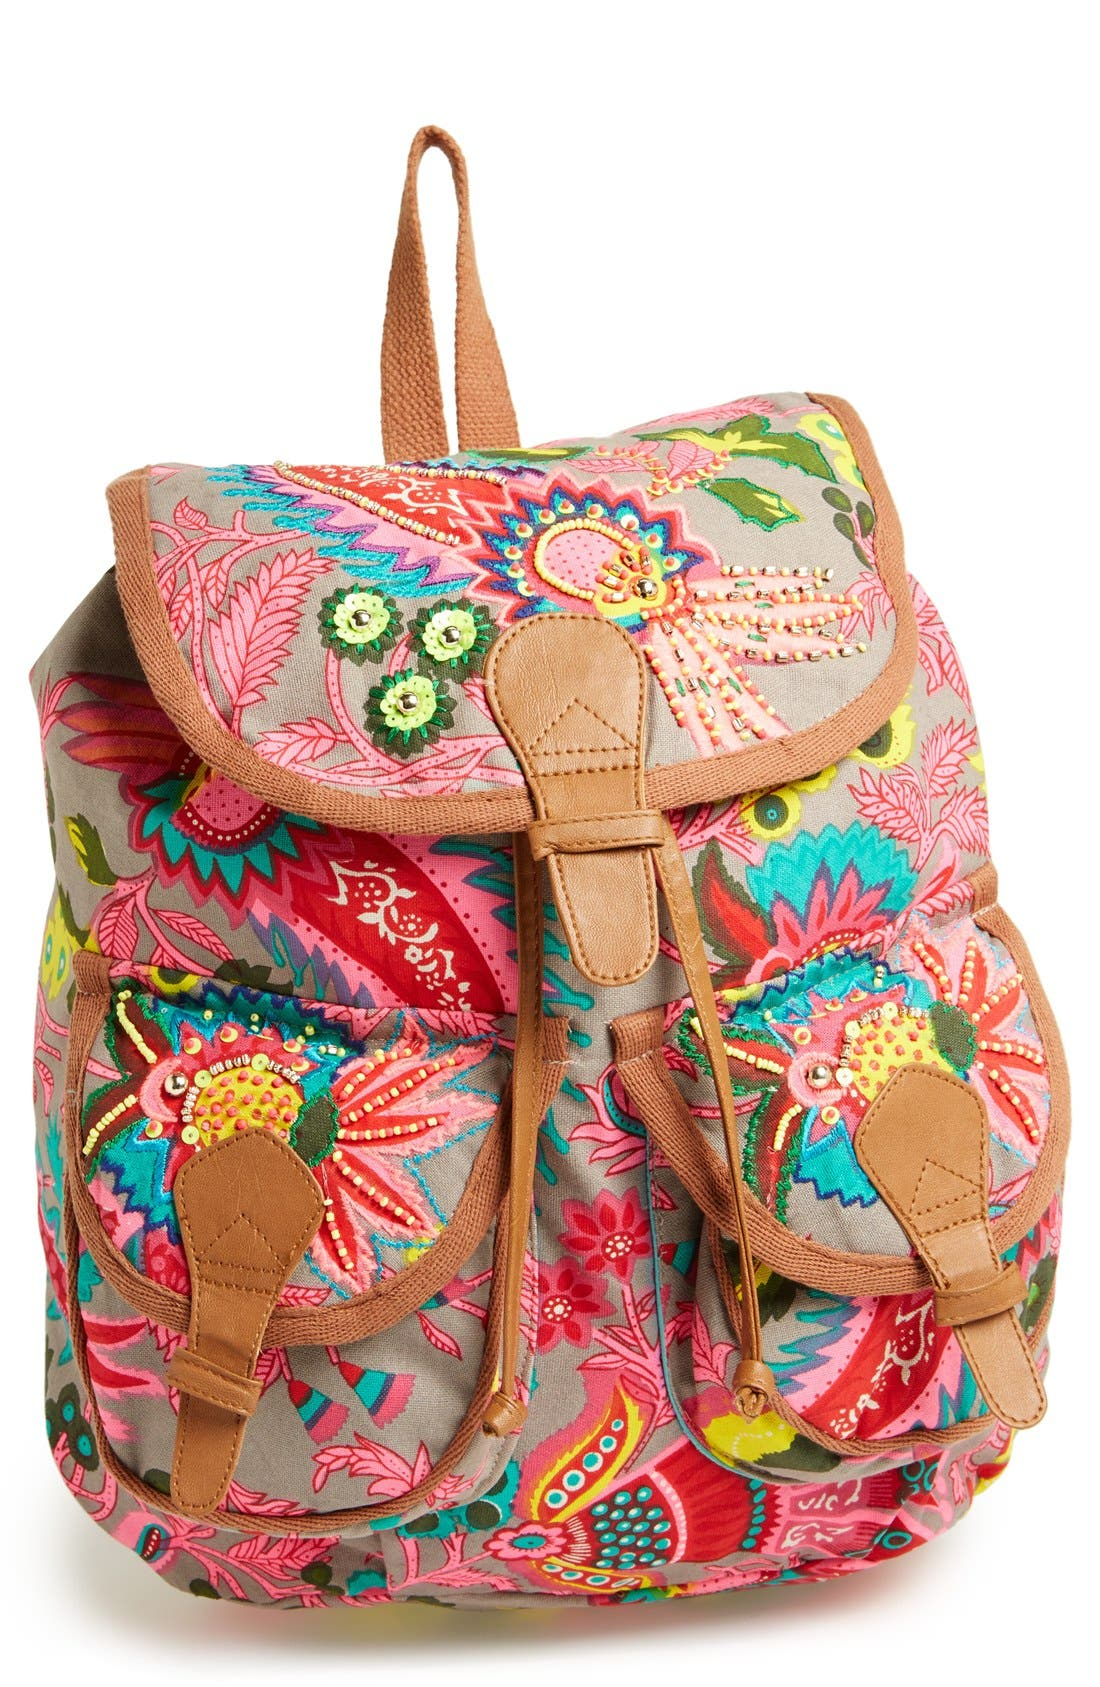 Alternate Image 1 Selected - Steve Madden Beaded Canvas Backpack